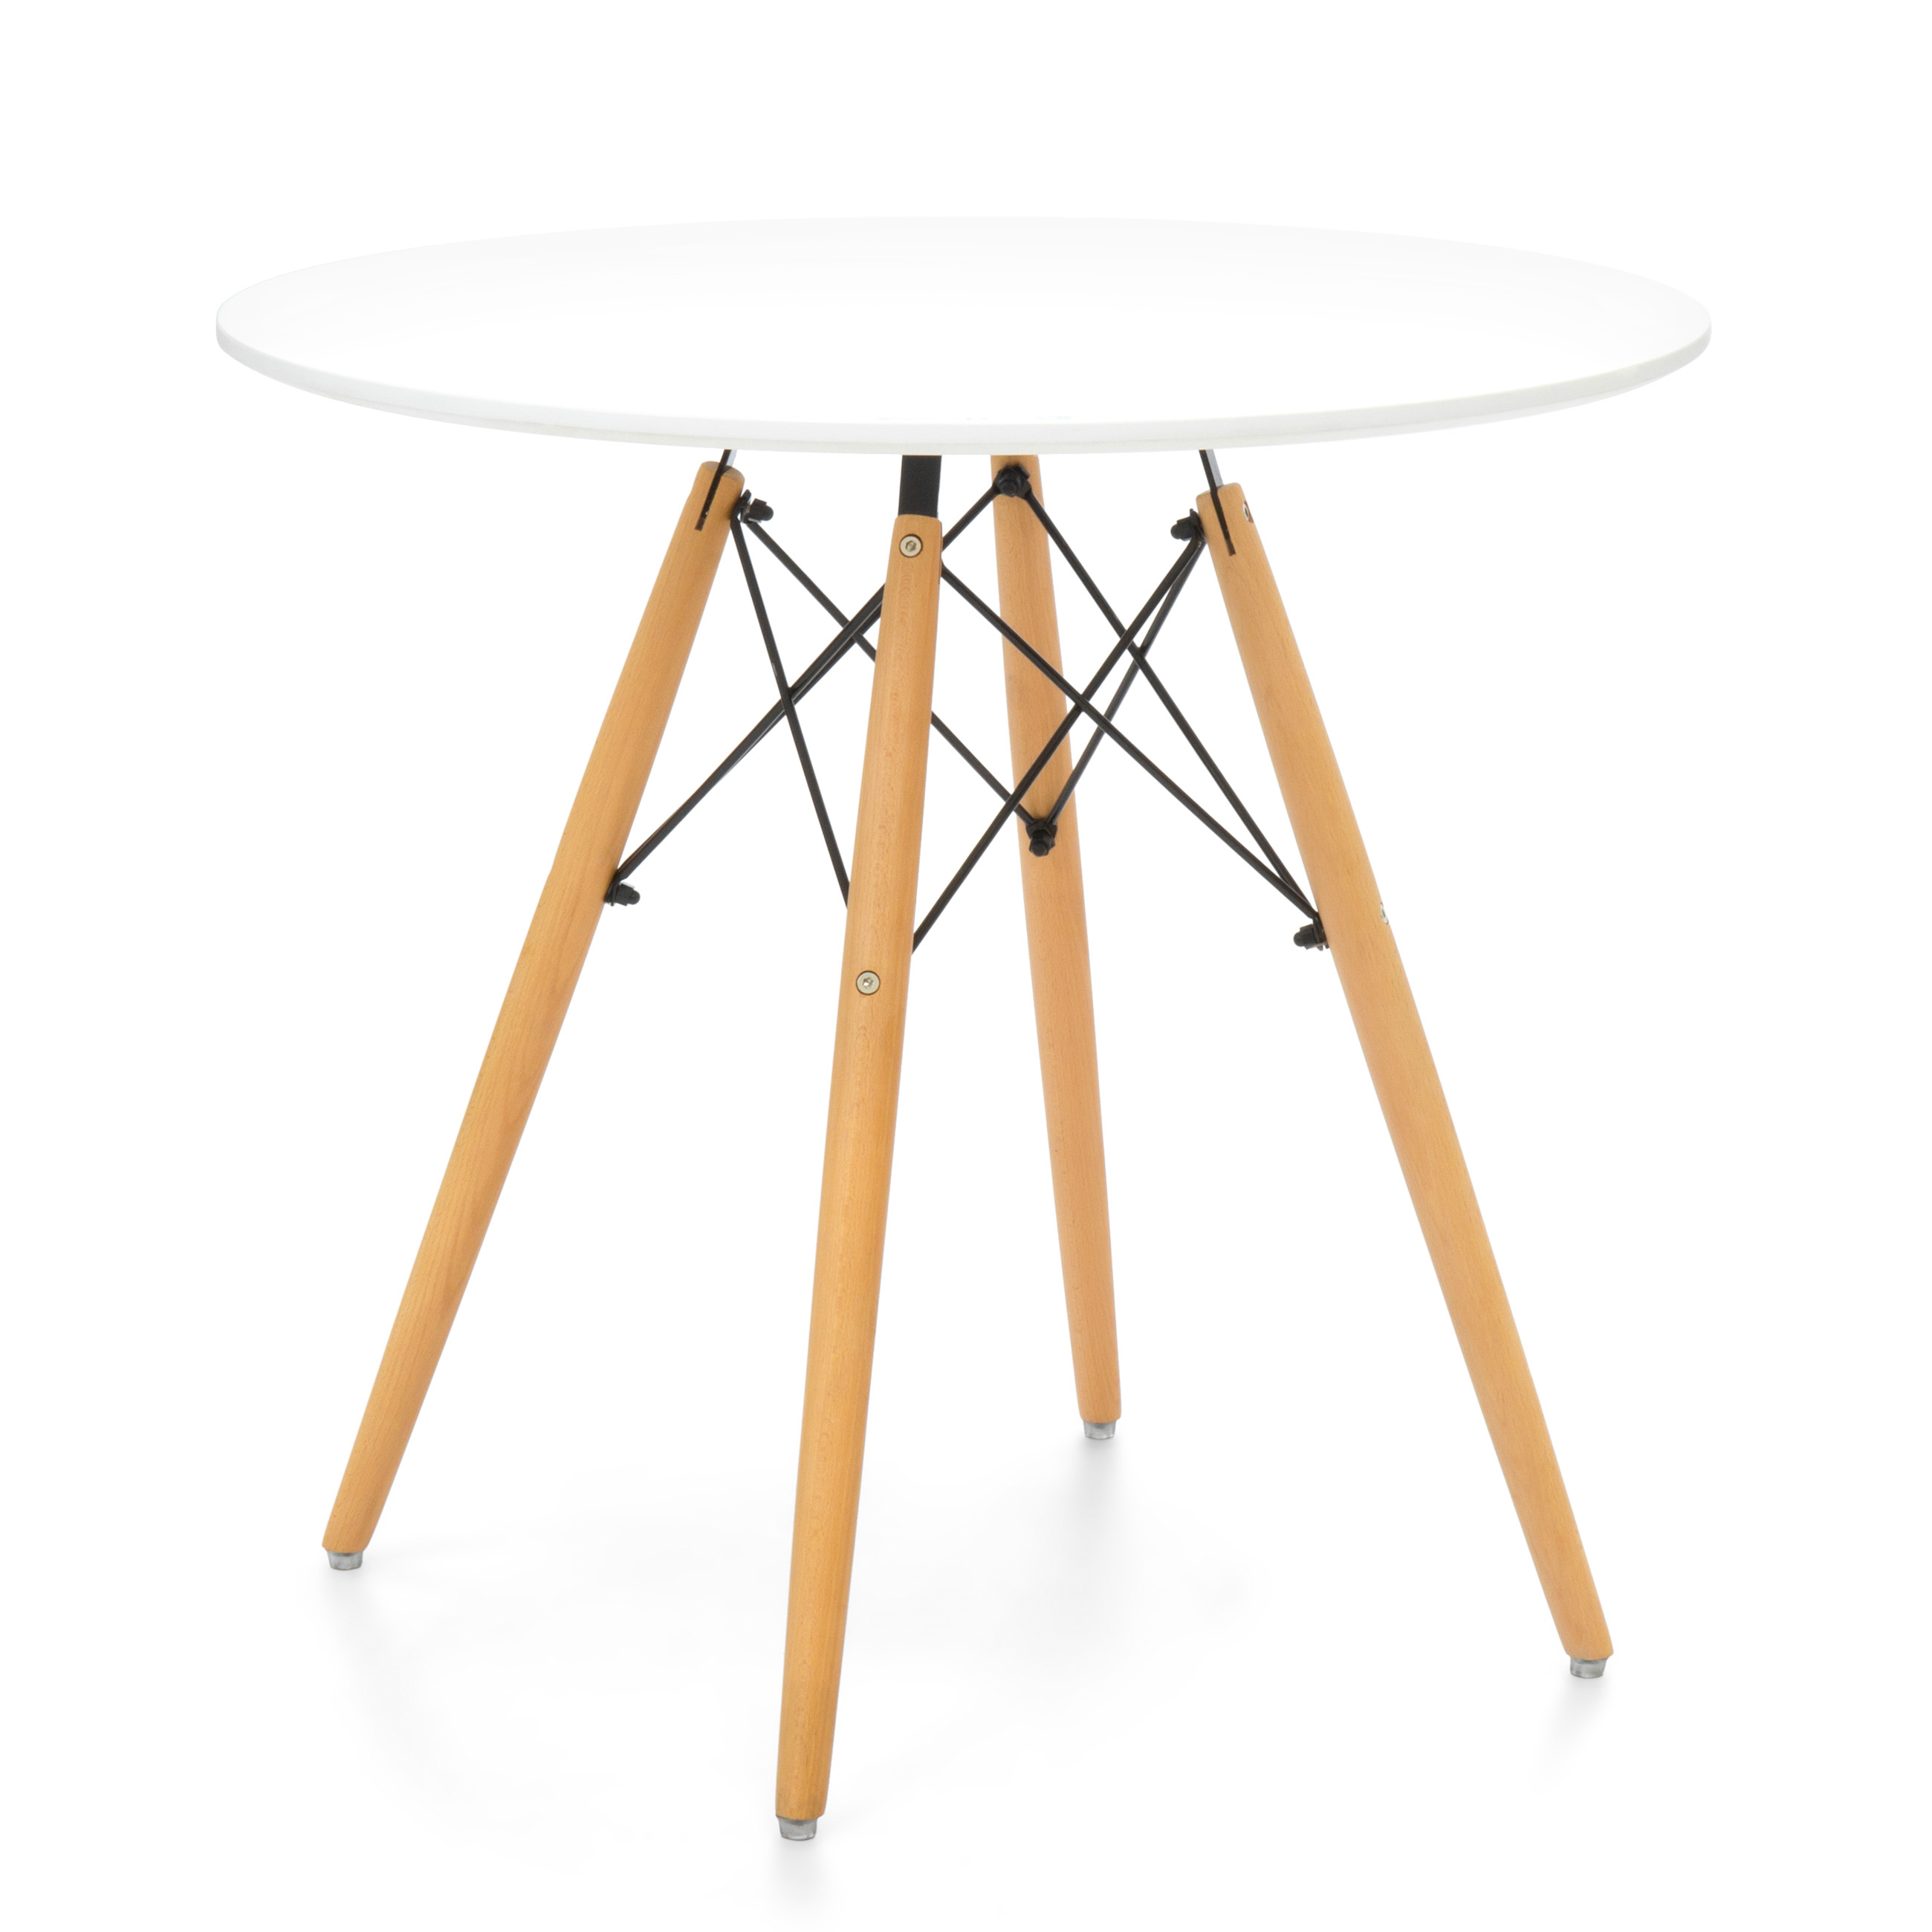 Best Choice Products Mid Century Modern Eames Style Round Dining Table w/ Wood Legs and White Tabletop